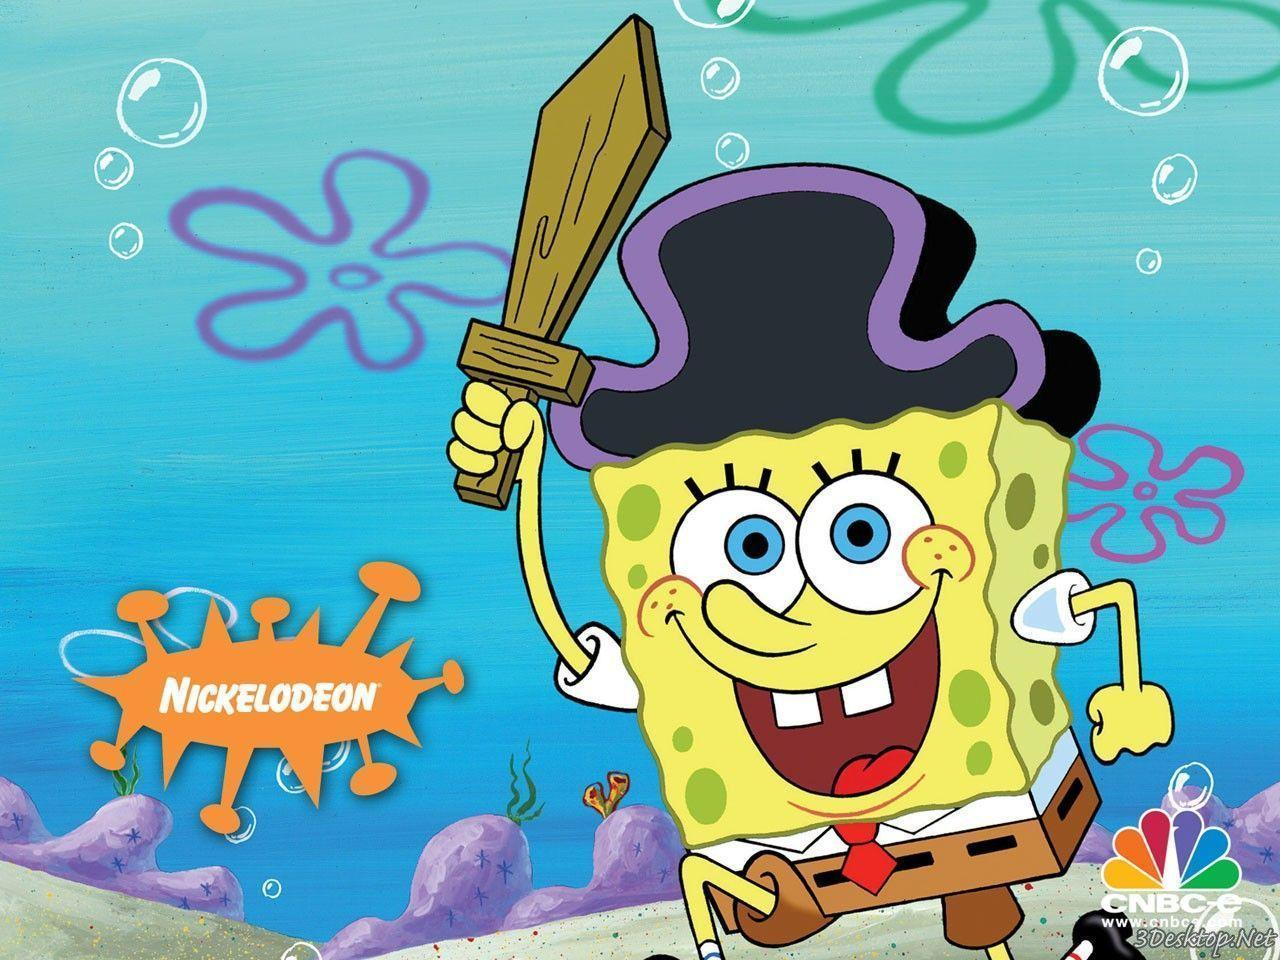 Nickelodeon Wallpapers Spongebob computer wallpapers desktop